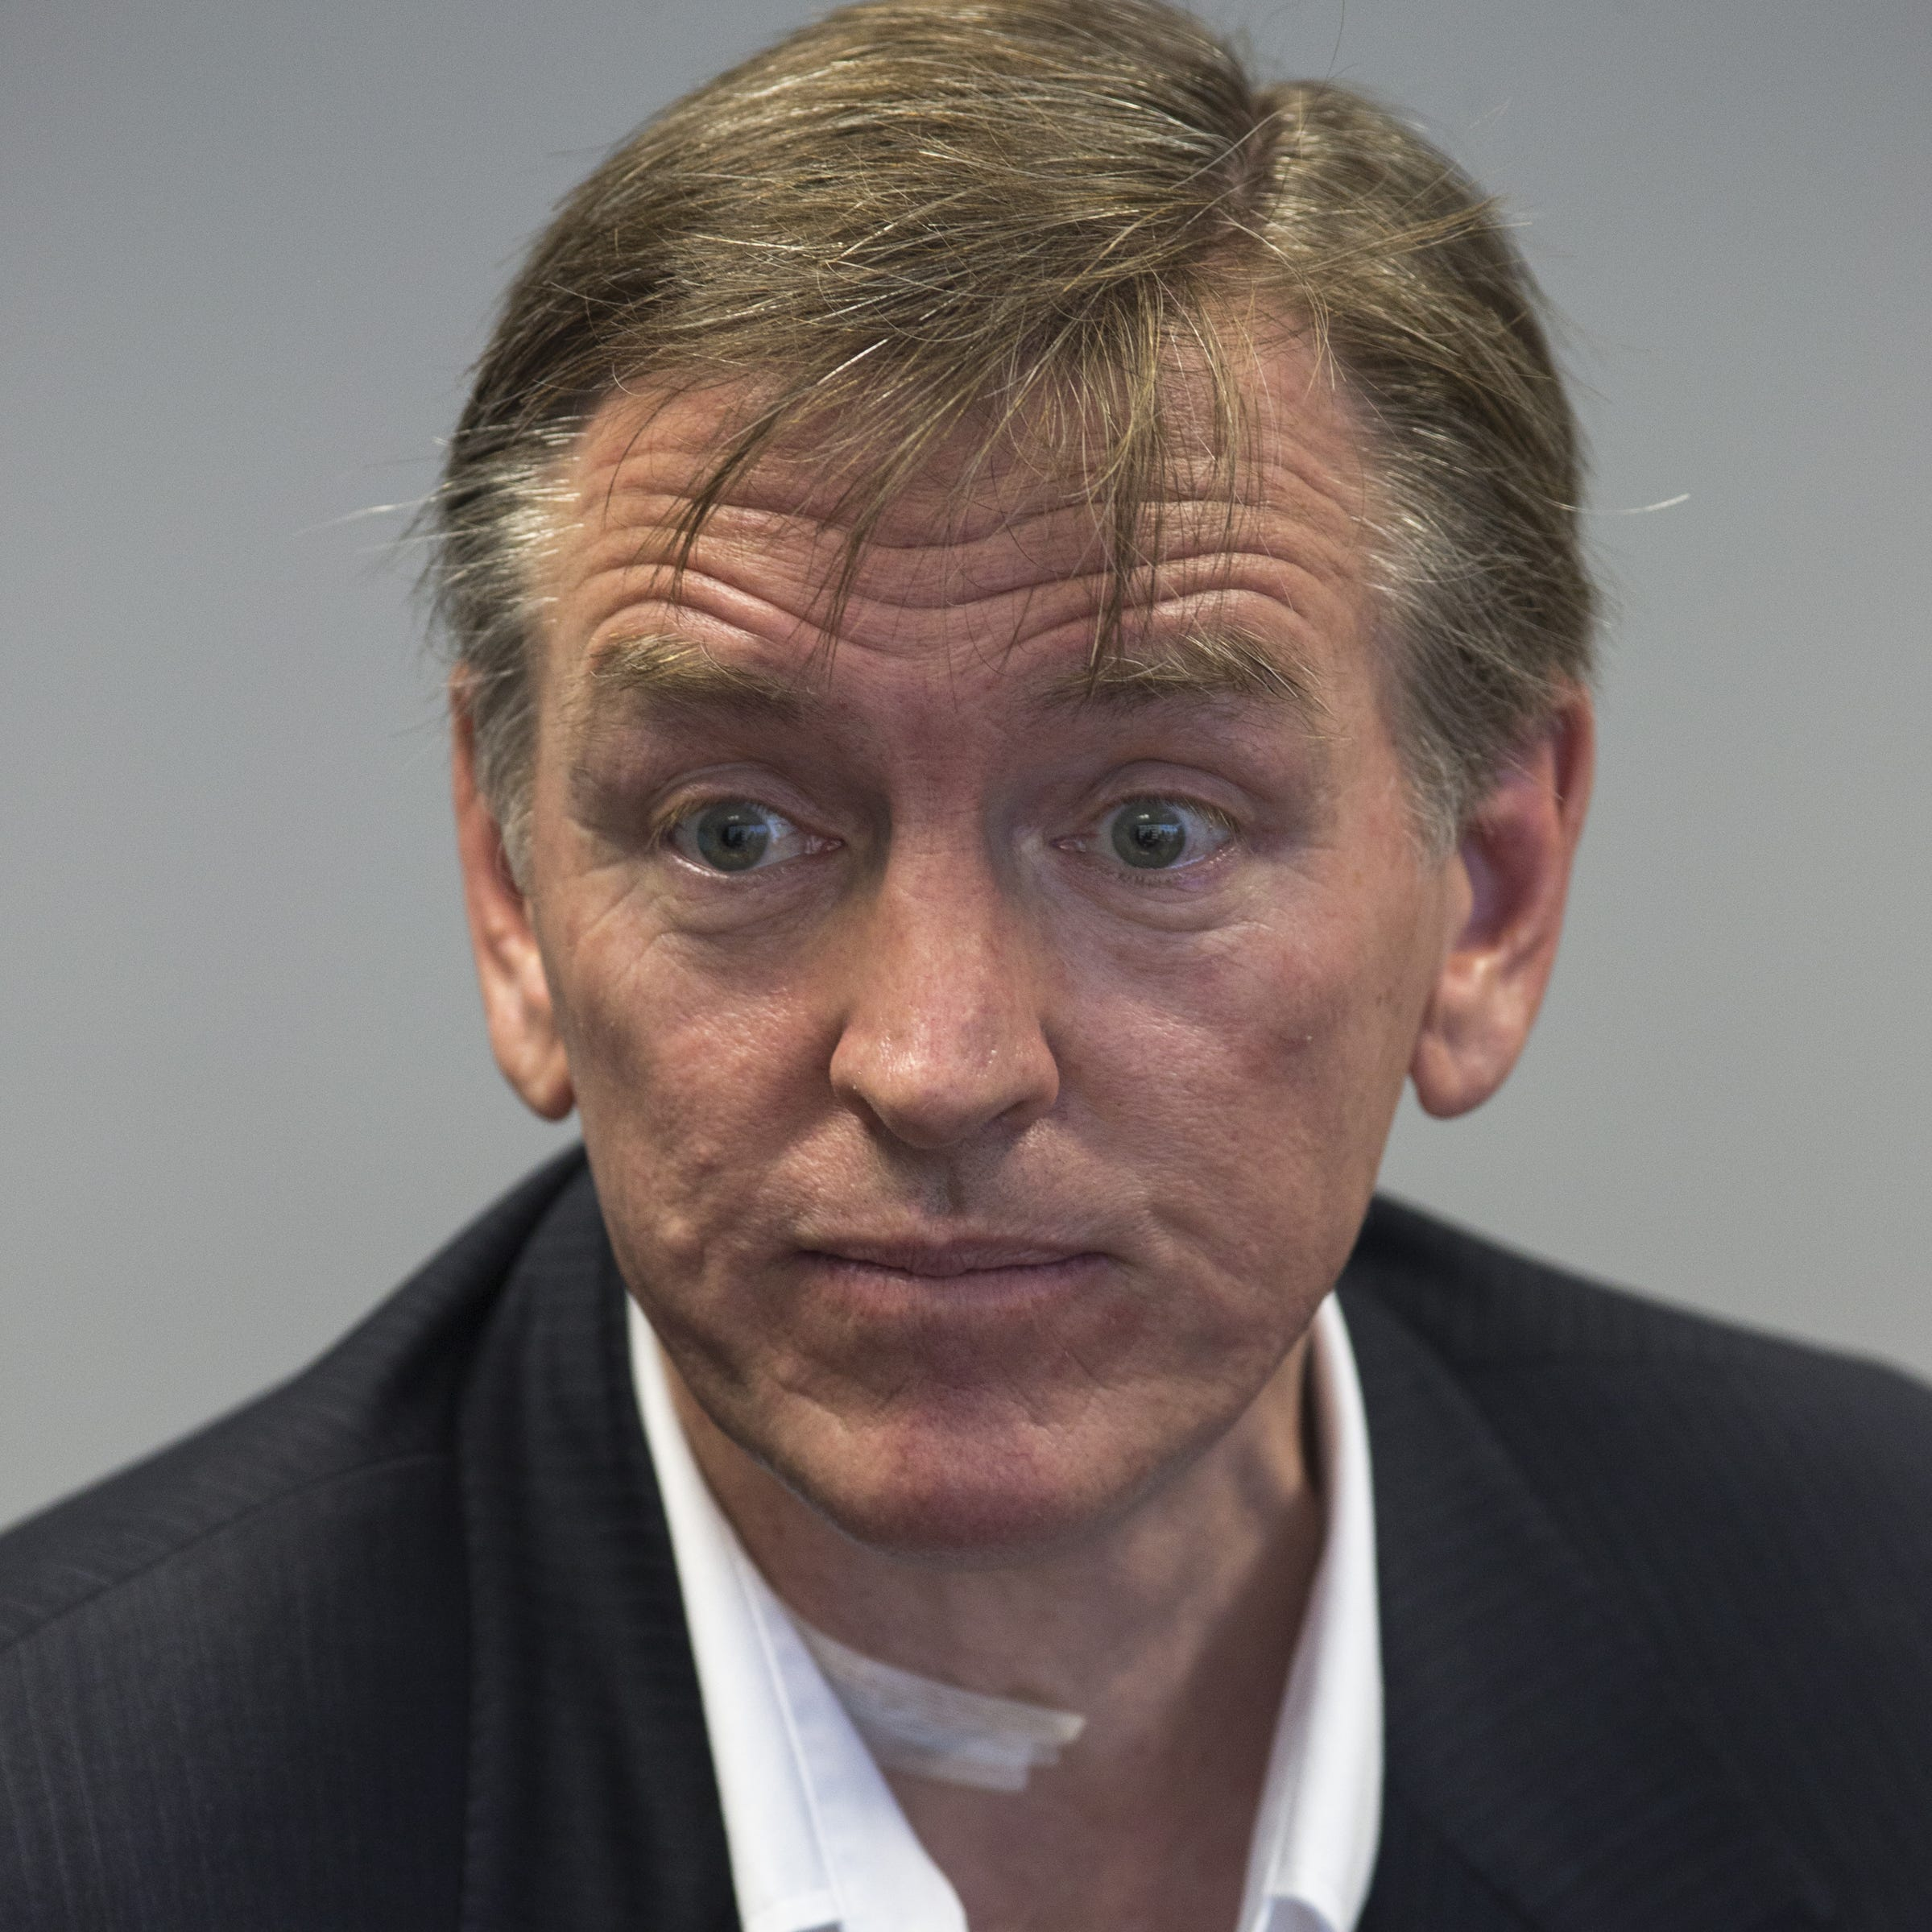 Paul Gosar's siblings rip him in brutal campaign ad but will it matter?